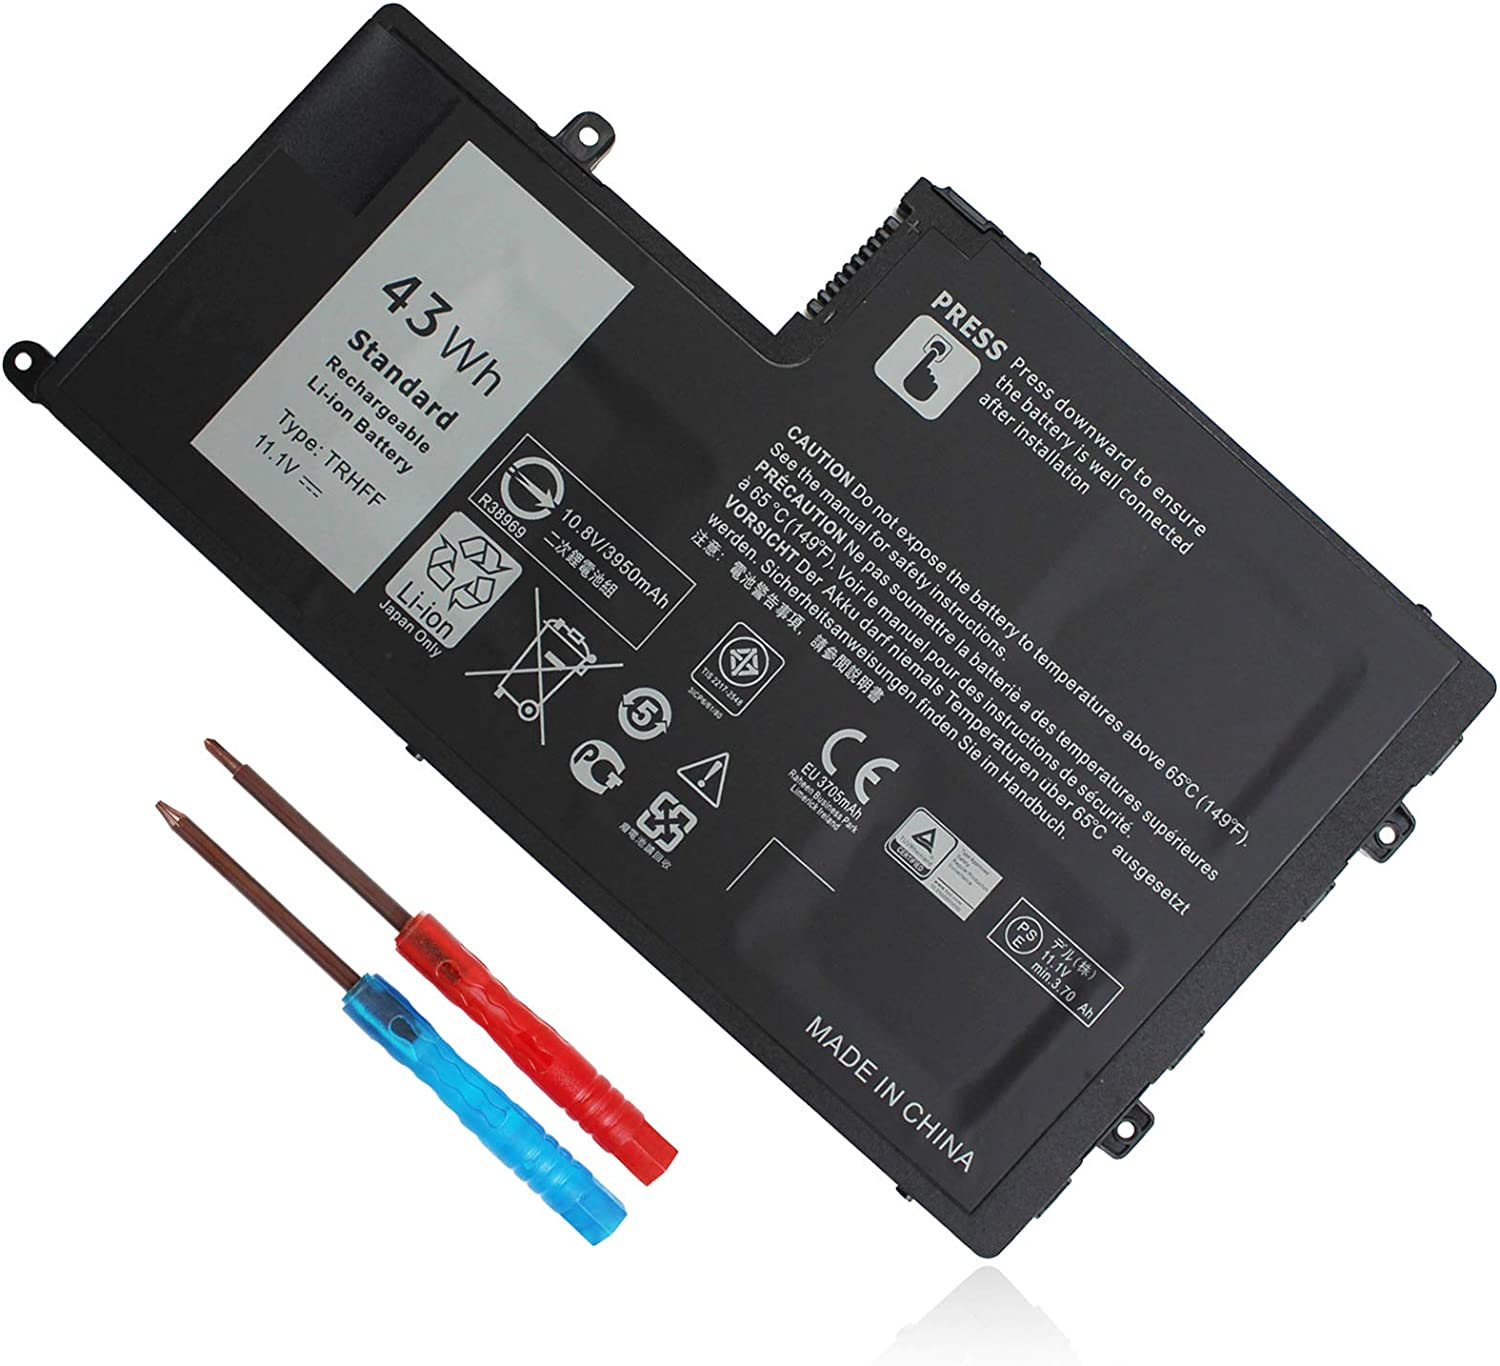 11.1V 43Wh TRHFF Laptop Battery Compatible with Dell Inspiron 15 5547 5548 5557 5542 14 5447 5442 5445 5457 5448 5543 5545 Latitude 3450 3550 fit 0PD19 7P3X9 1V2F6 P39F 0DFVYN 01V2F6 5MD4V 86JK8 DFVYN